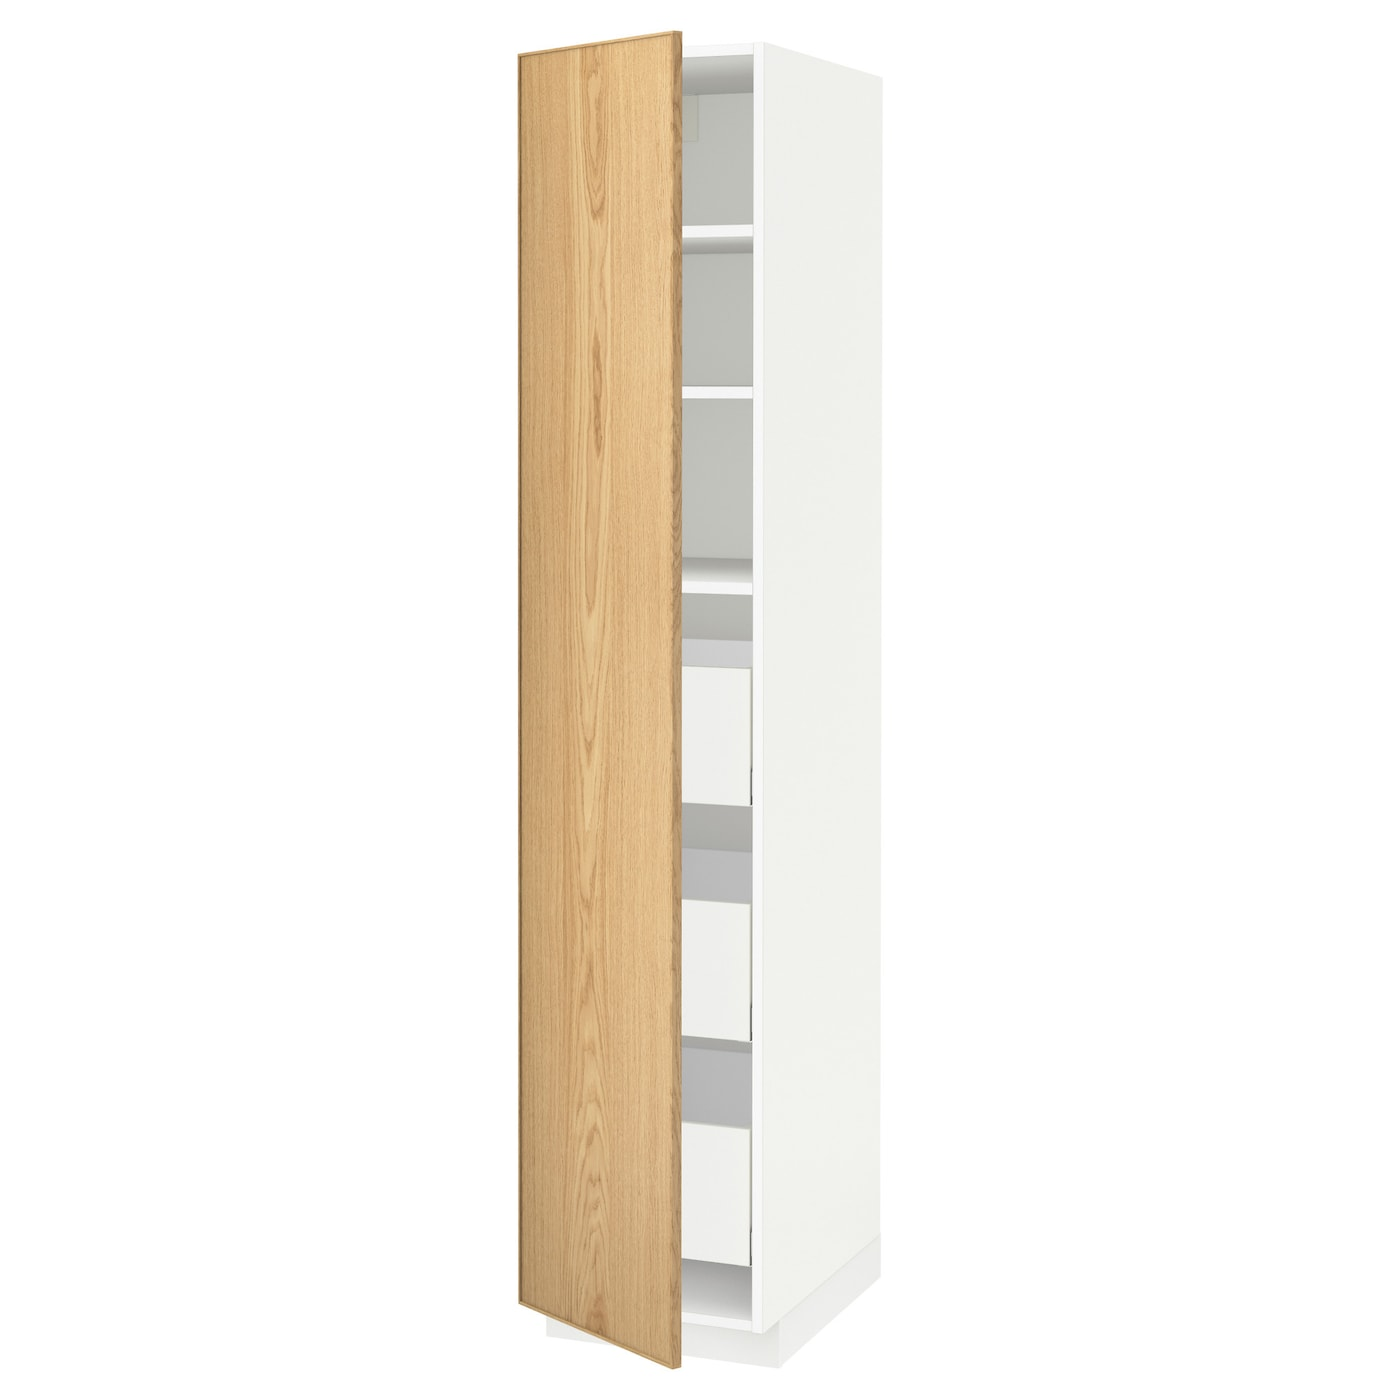 IKEA METOD/MAXIMERA high cabinet with drawers Sturdy frame construction, 18 mm thick.